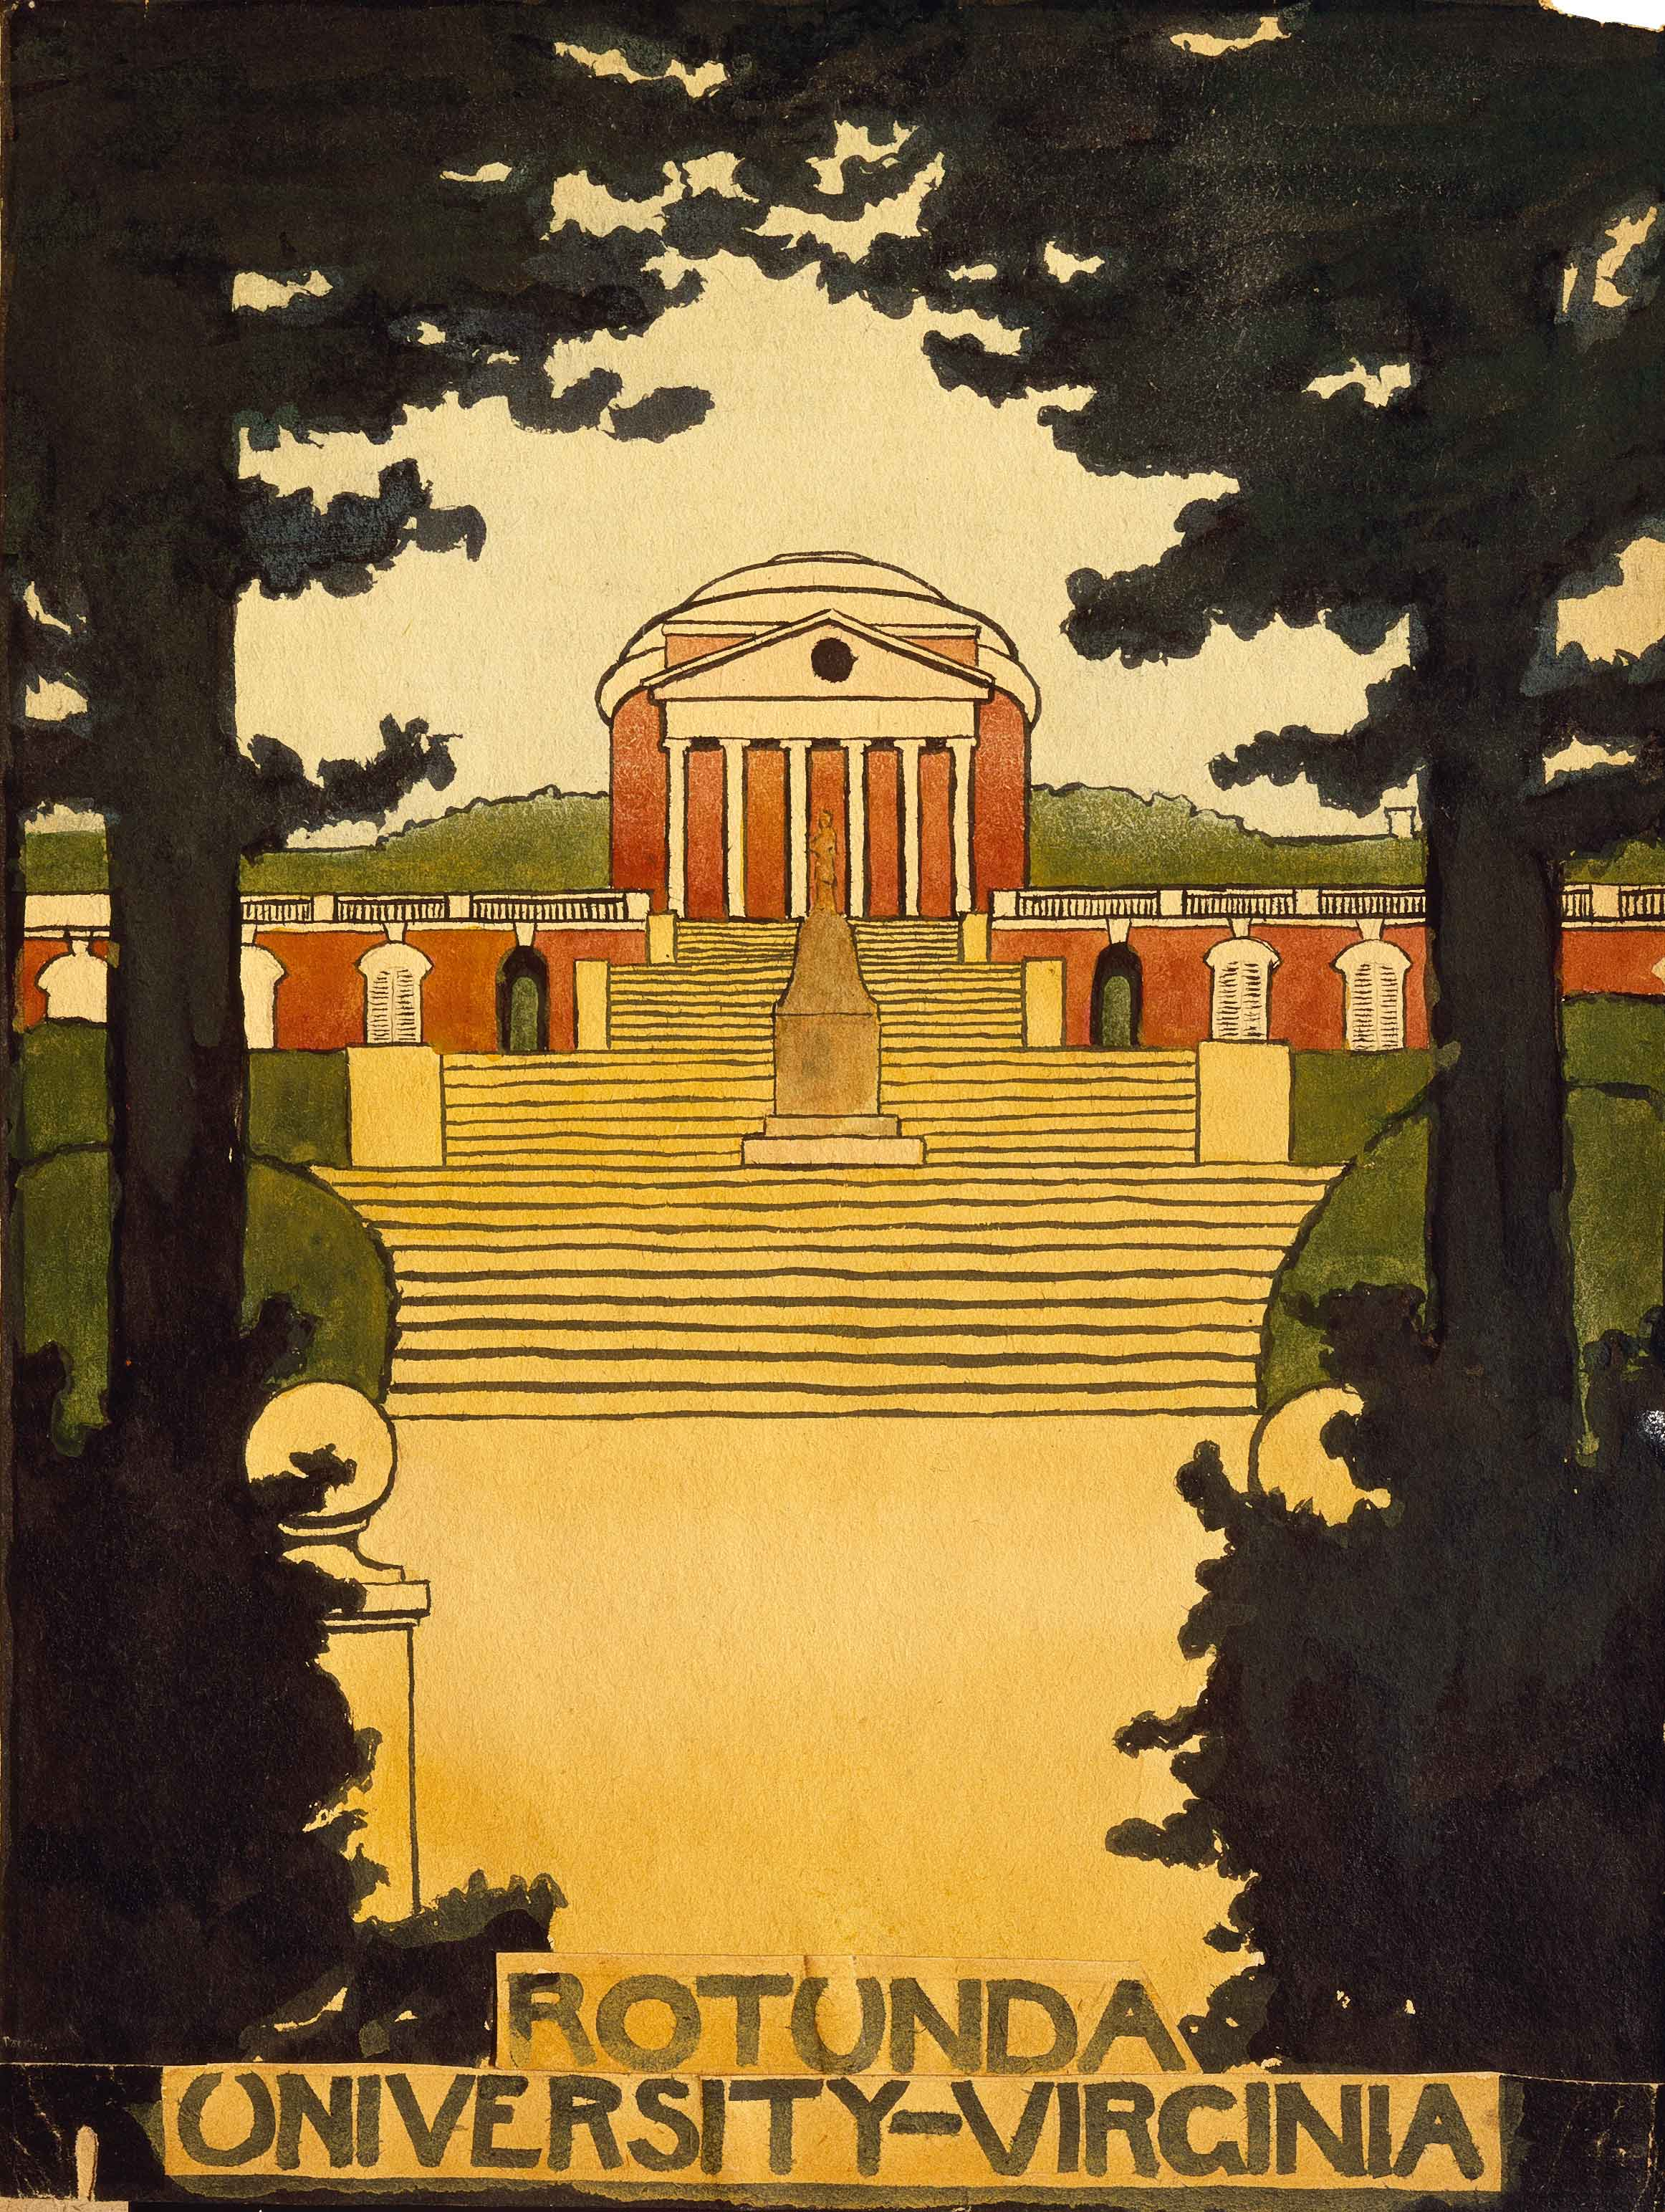 Untitled (Rotunda -University of Virginia) Scrapbook U of V, 1912-1914, Georgia O'Keeffe, Watercolor on paper